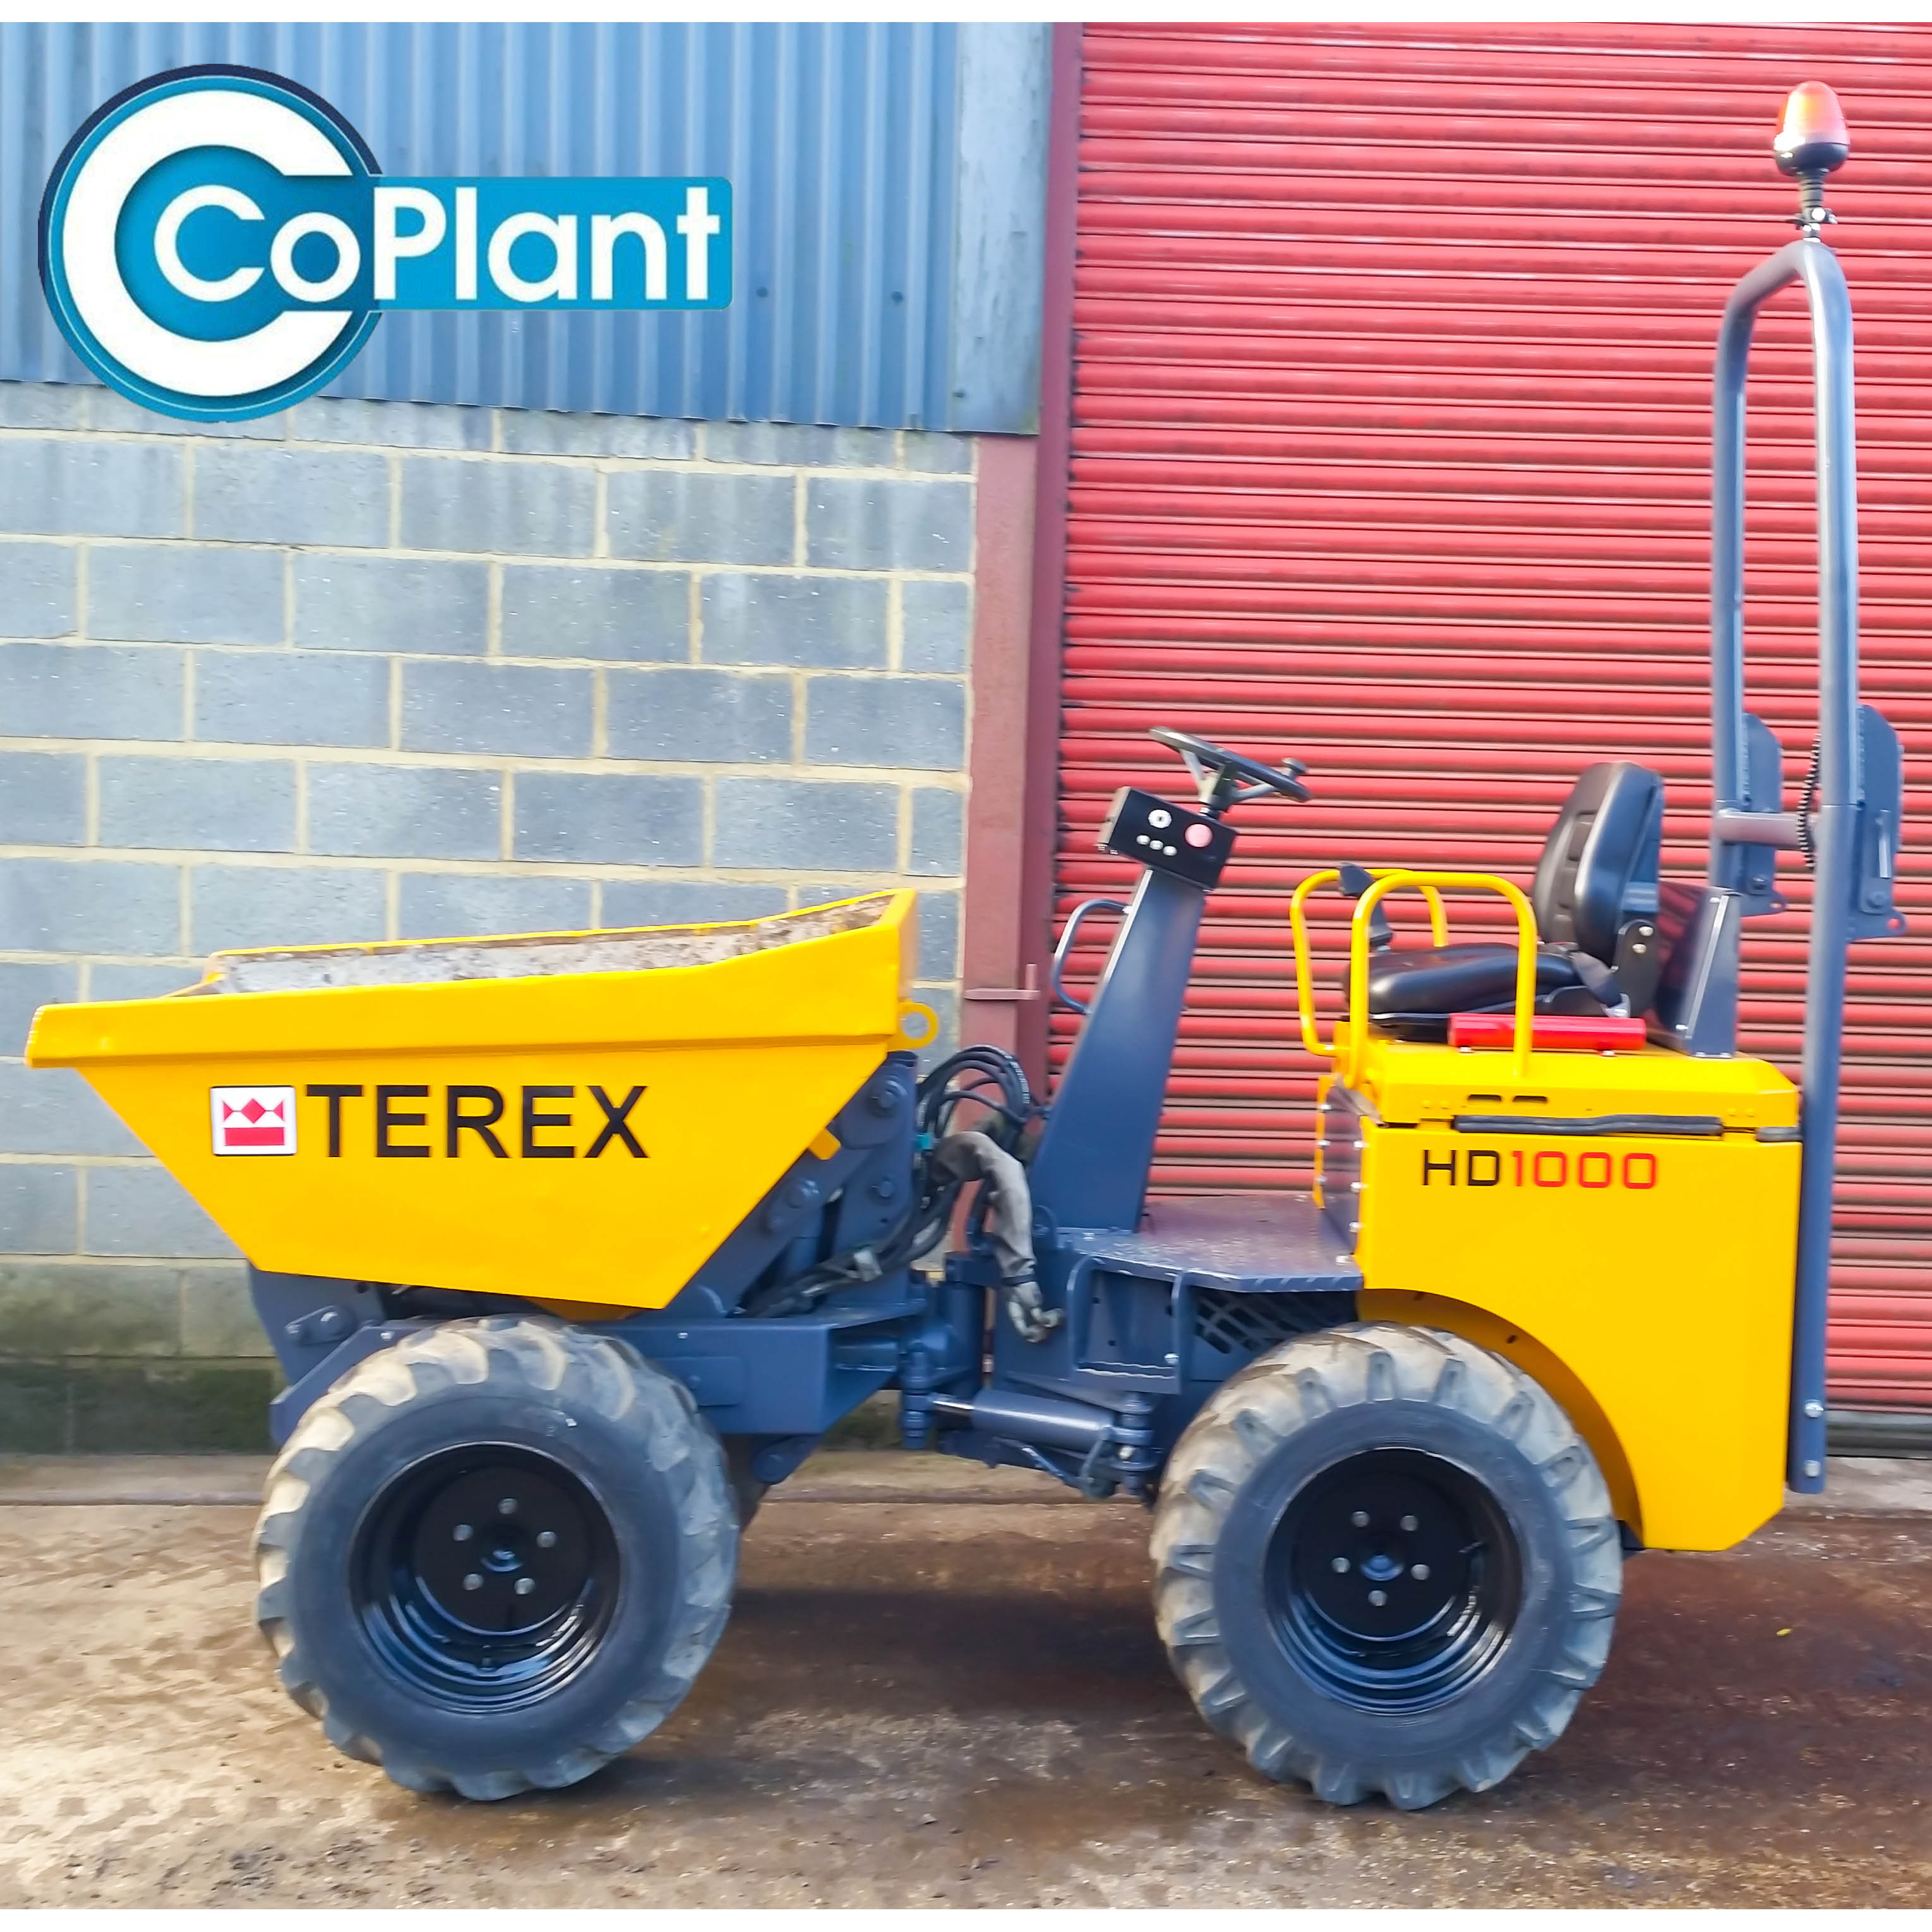 Terex HD1000 2008 Dumper available from coplant